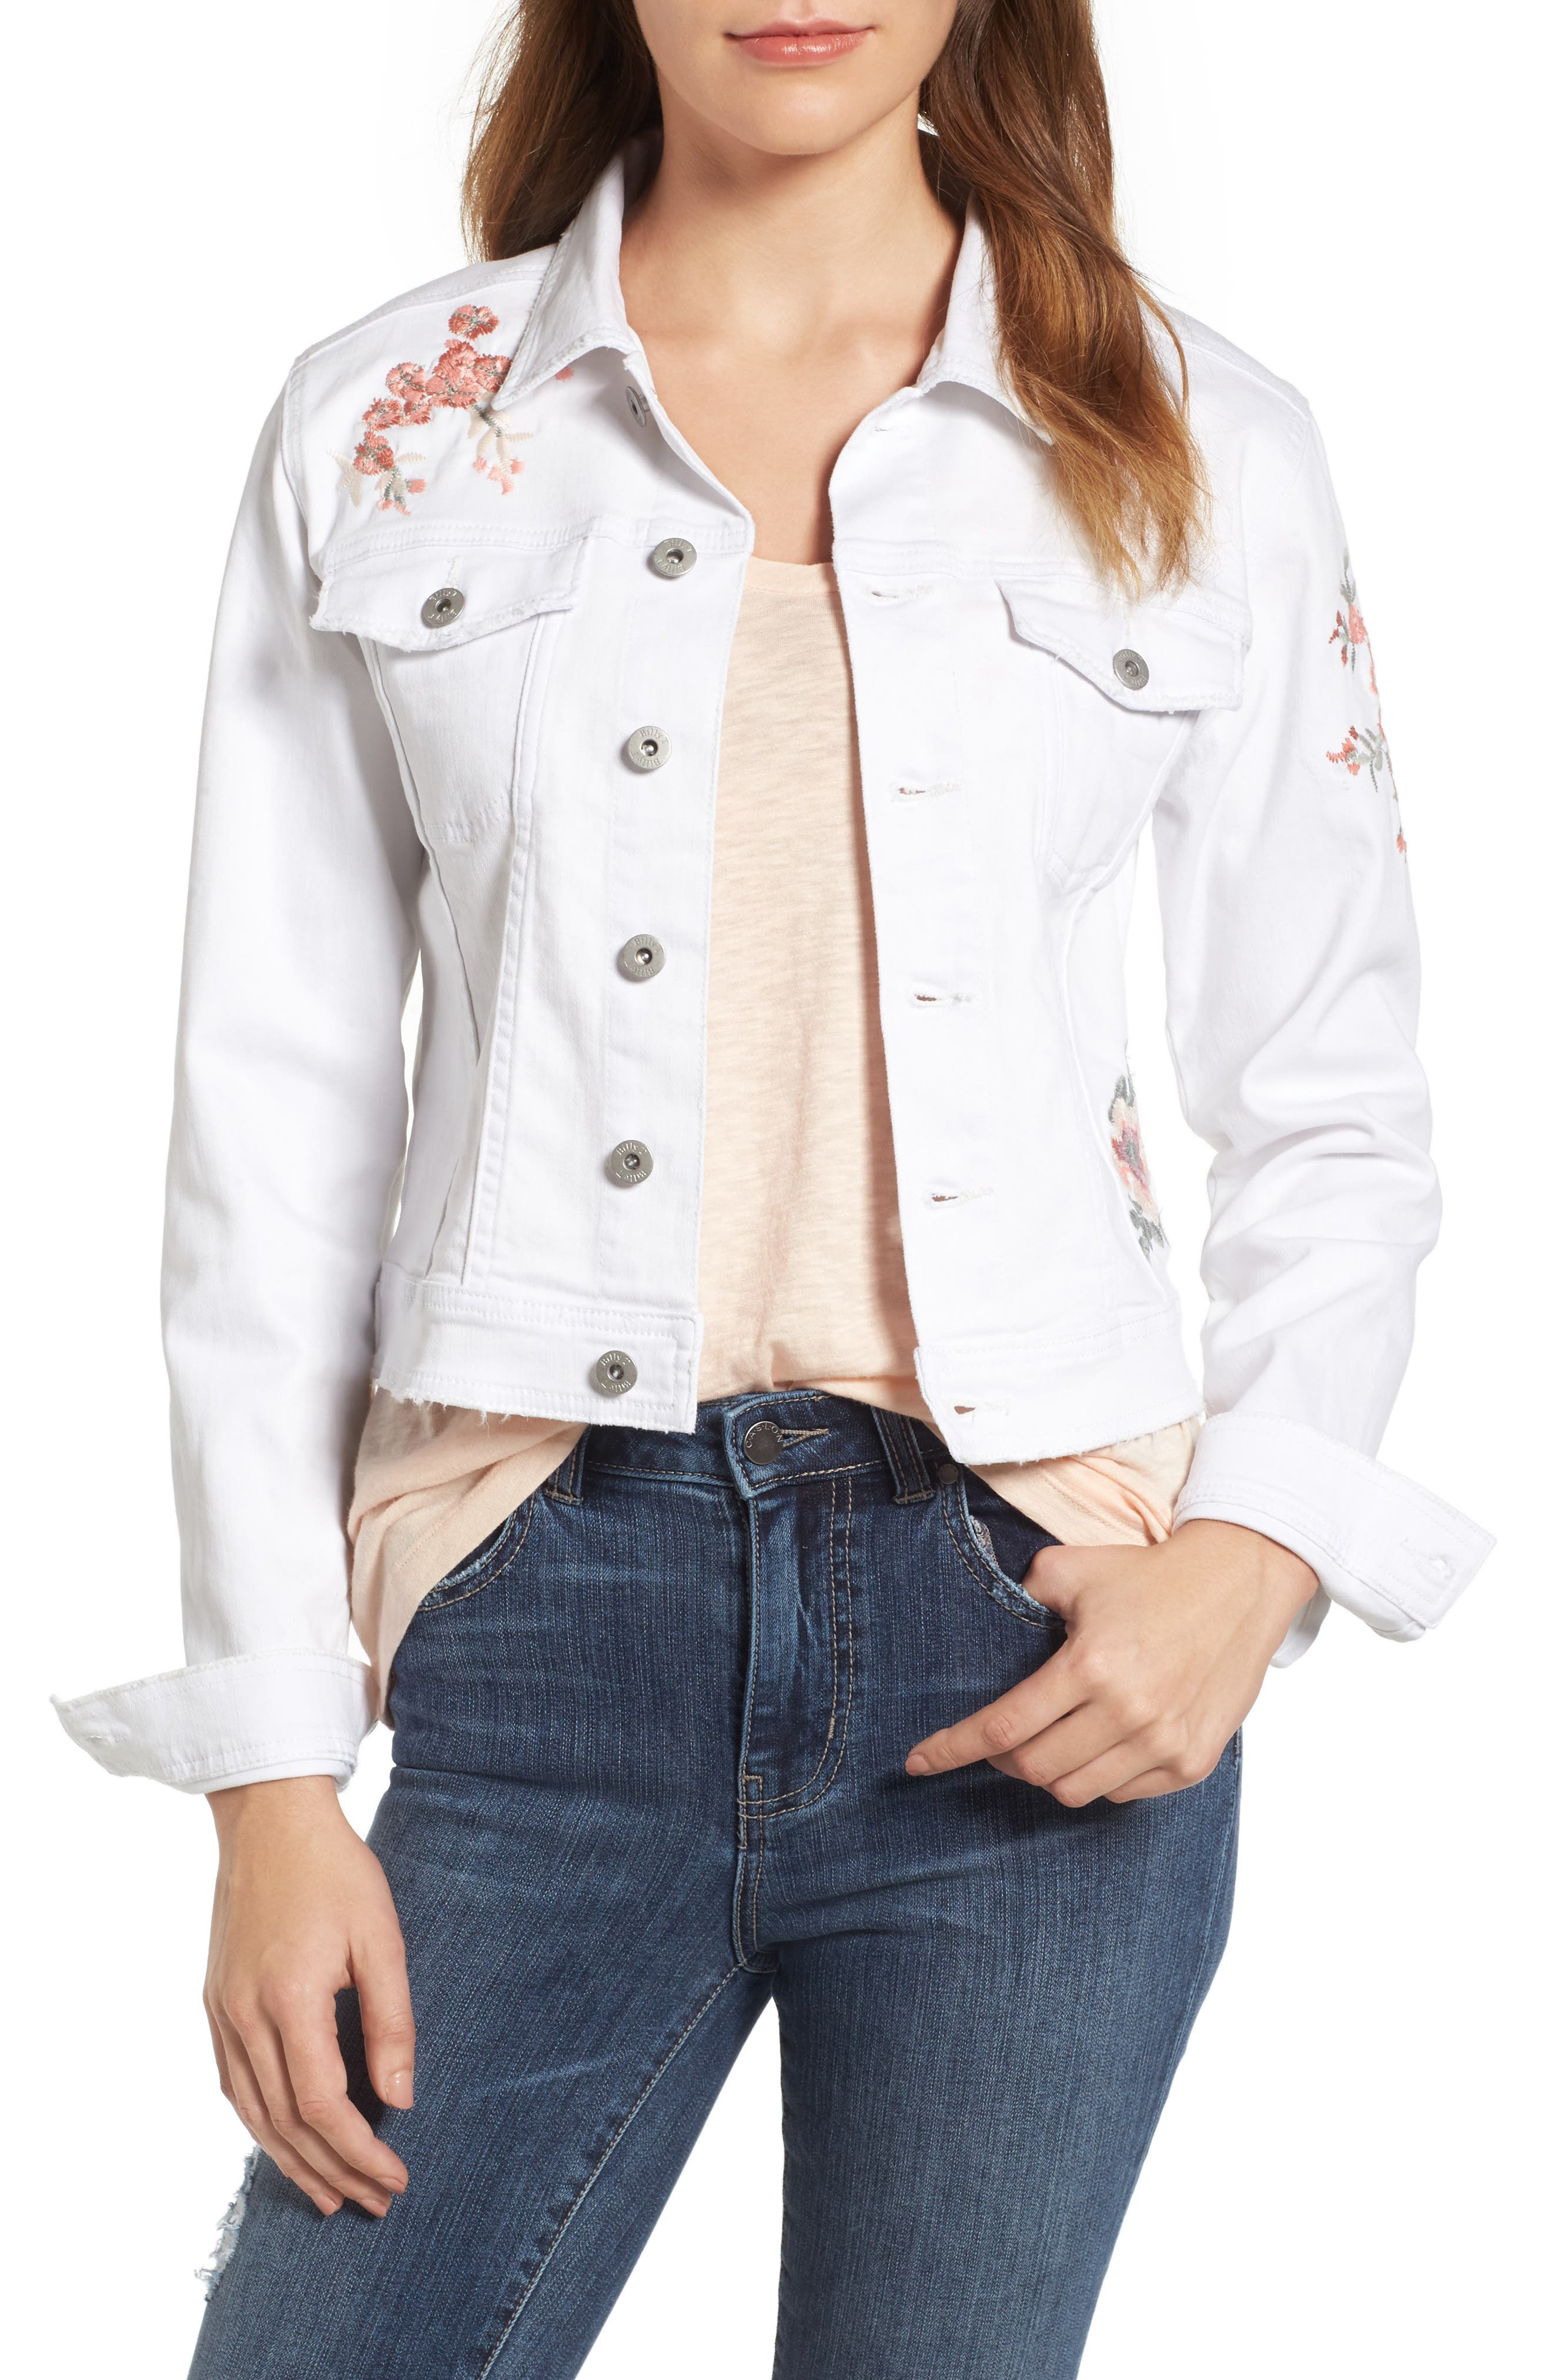 Main Image - BILLY T Embroidered White Denim Jacket